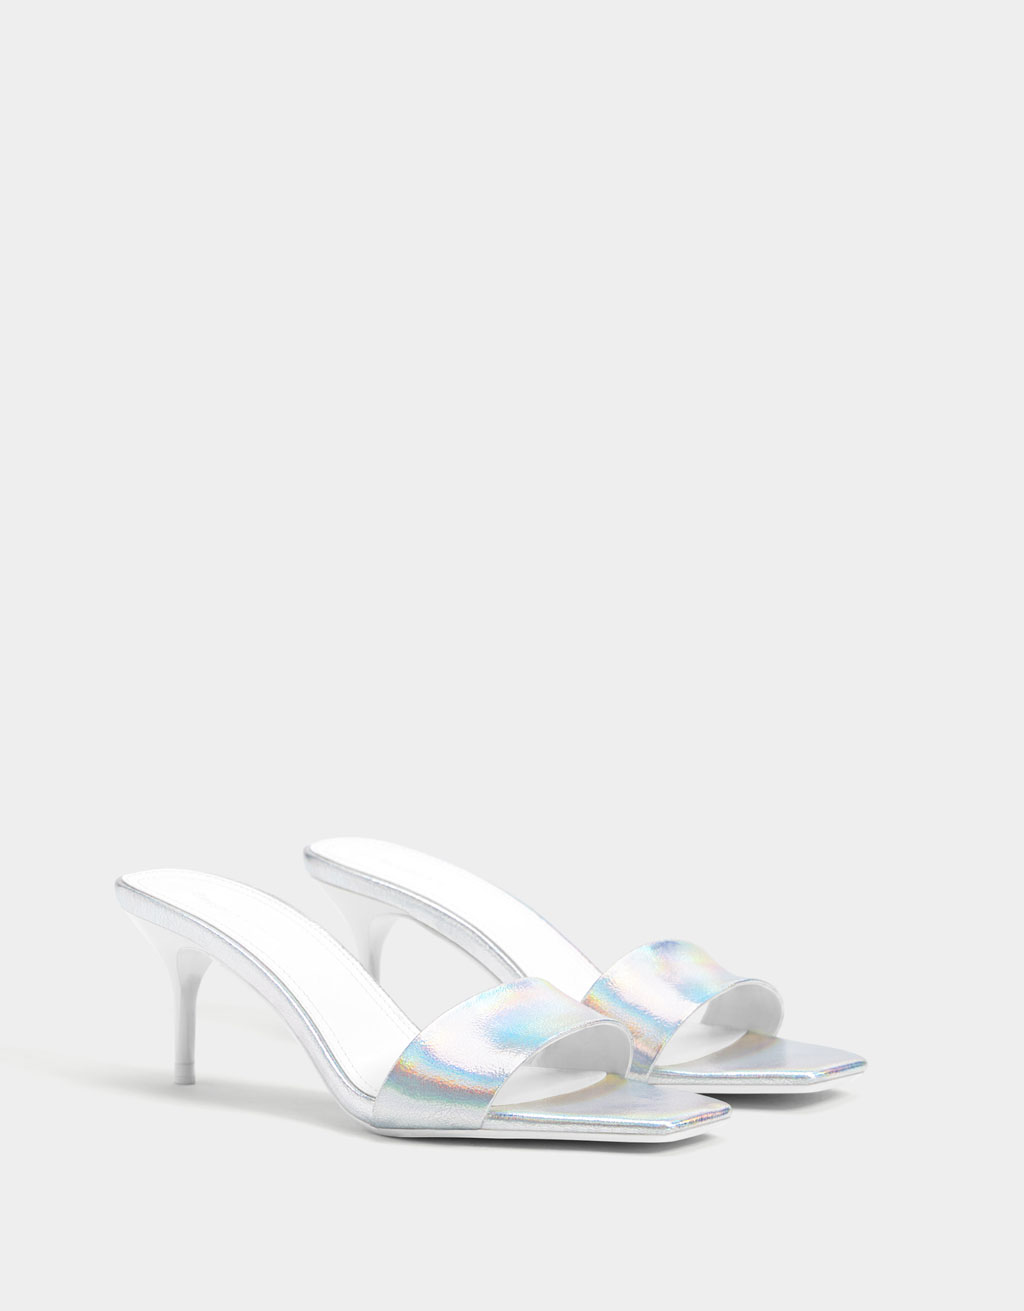 Iridescent mid-heel sandals